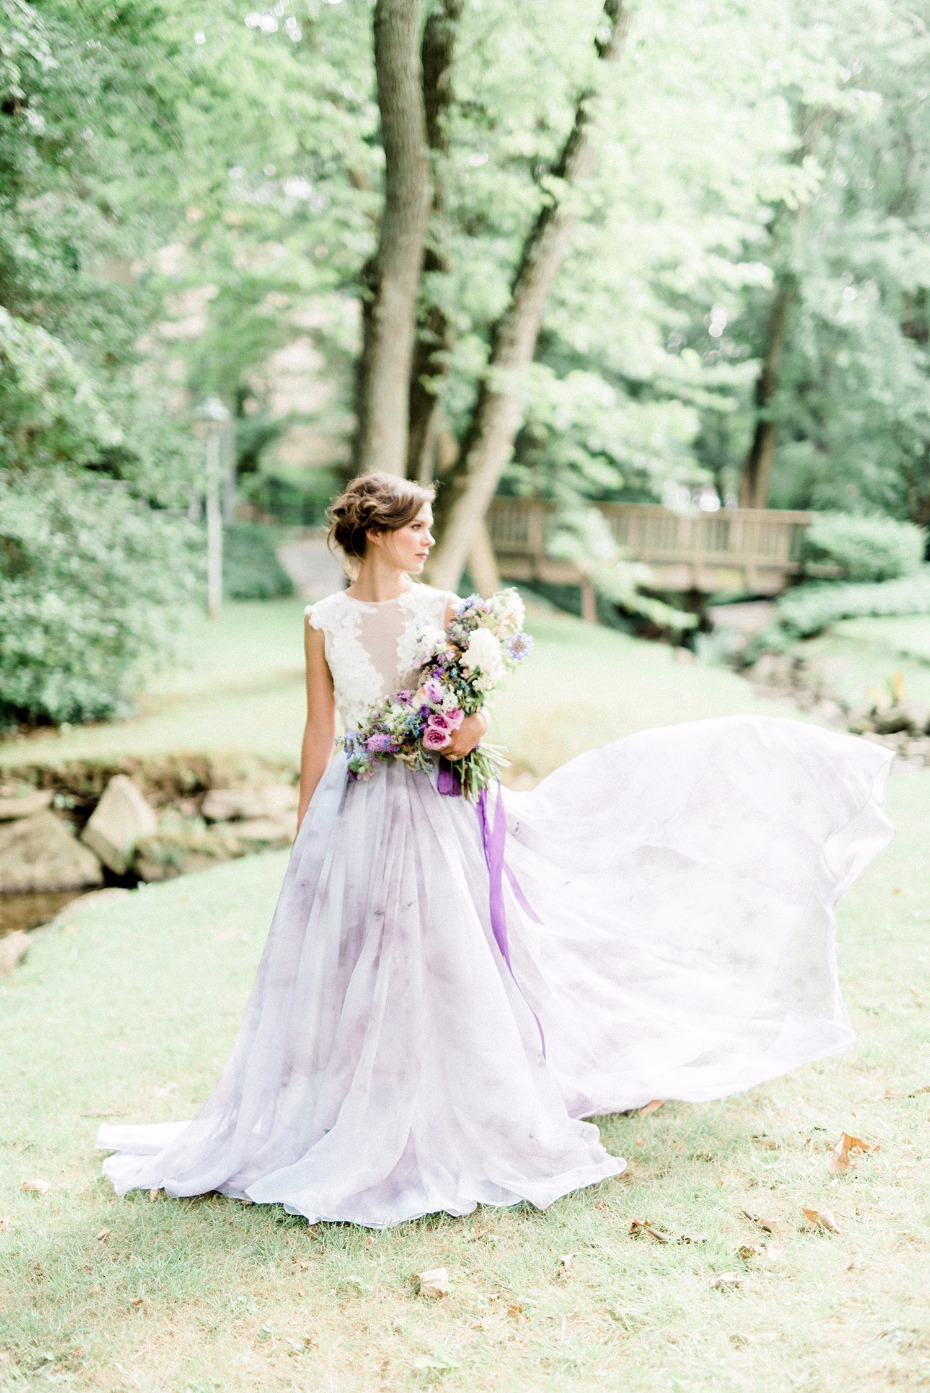 618321_haley-richter-photography-pomme-lavender-wedding-i.jpg